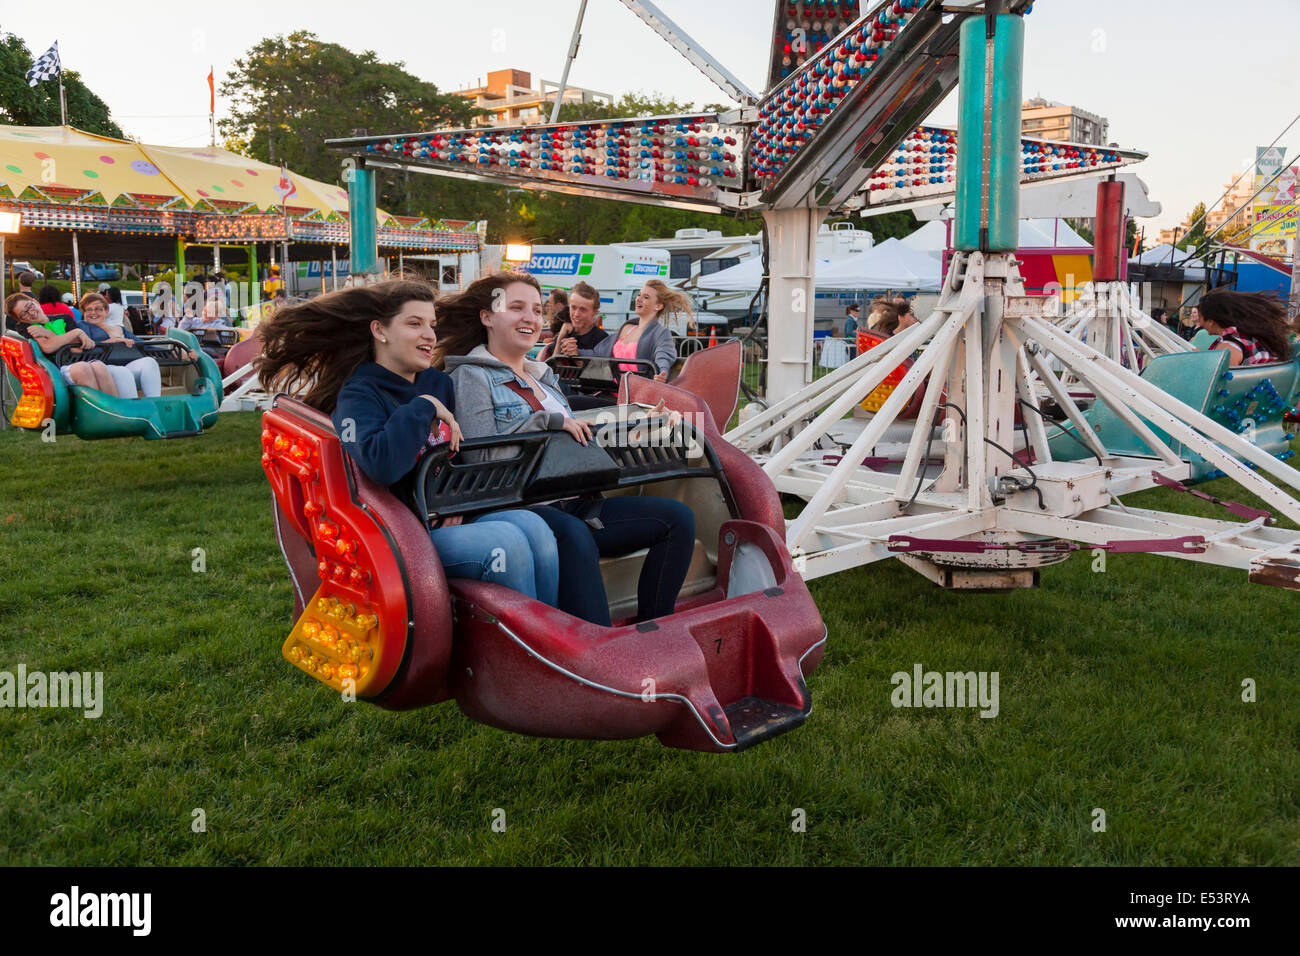 Vintage carnival ride www imgarcade com online image arcade - Filename People Enjoying The Sizzler Ride At The Sound Of Music Festival At E53rya Jpg